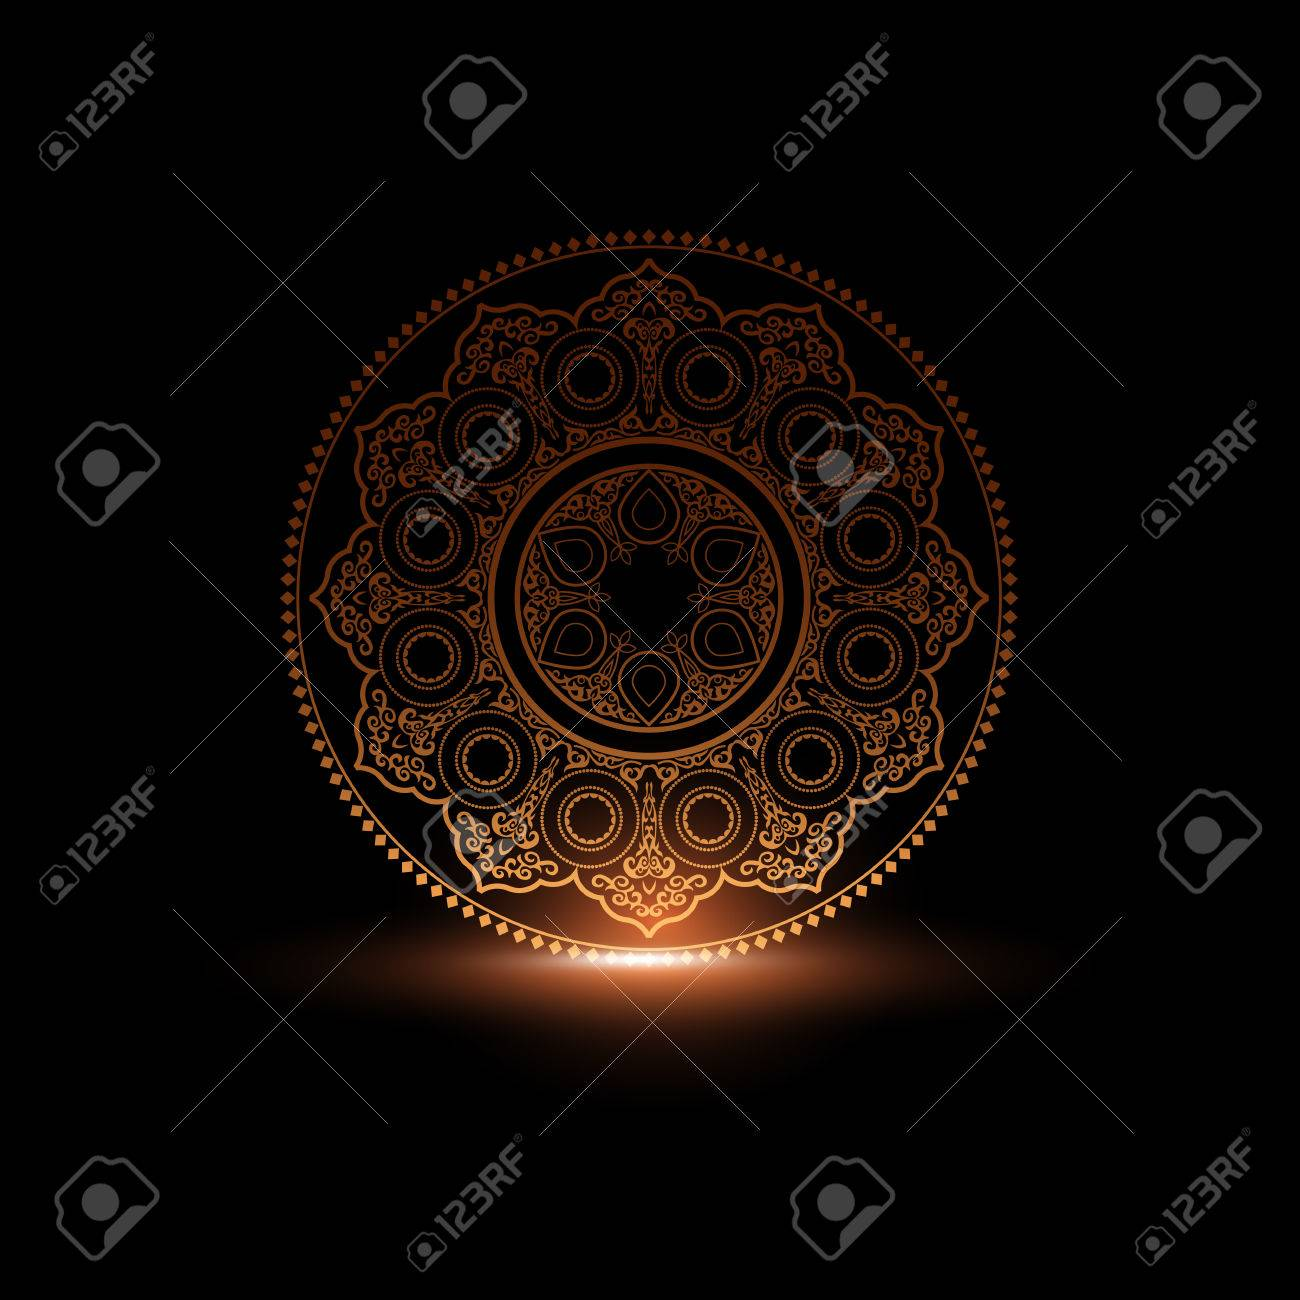 Mystical round ornament pattern with light arabic islamic mystical round ornament pattern with light arabic islamic east style vector illustration kristyandbryce Choice Image